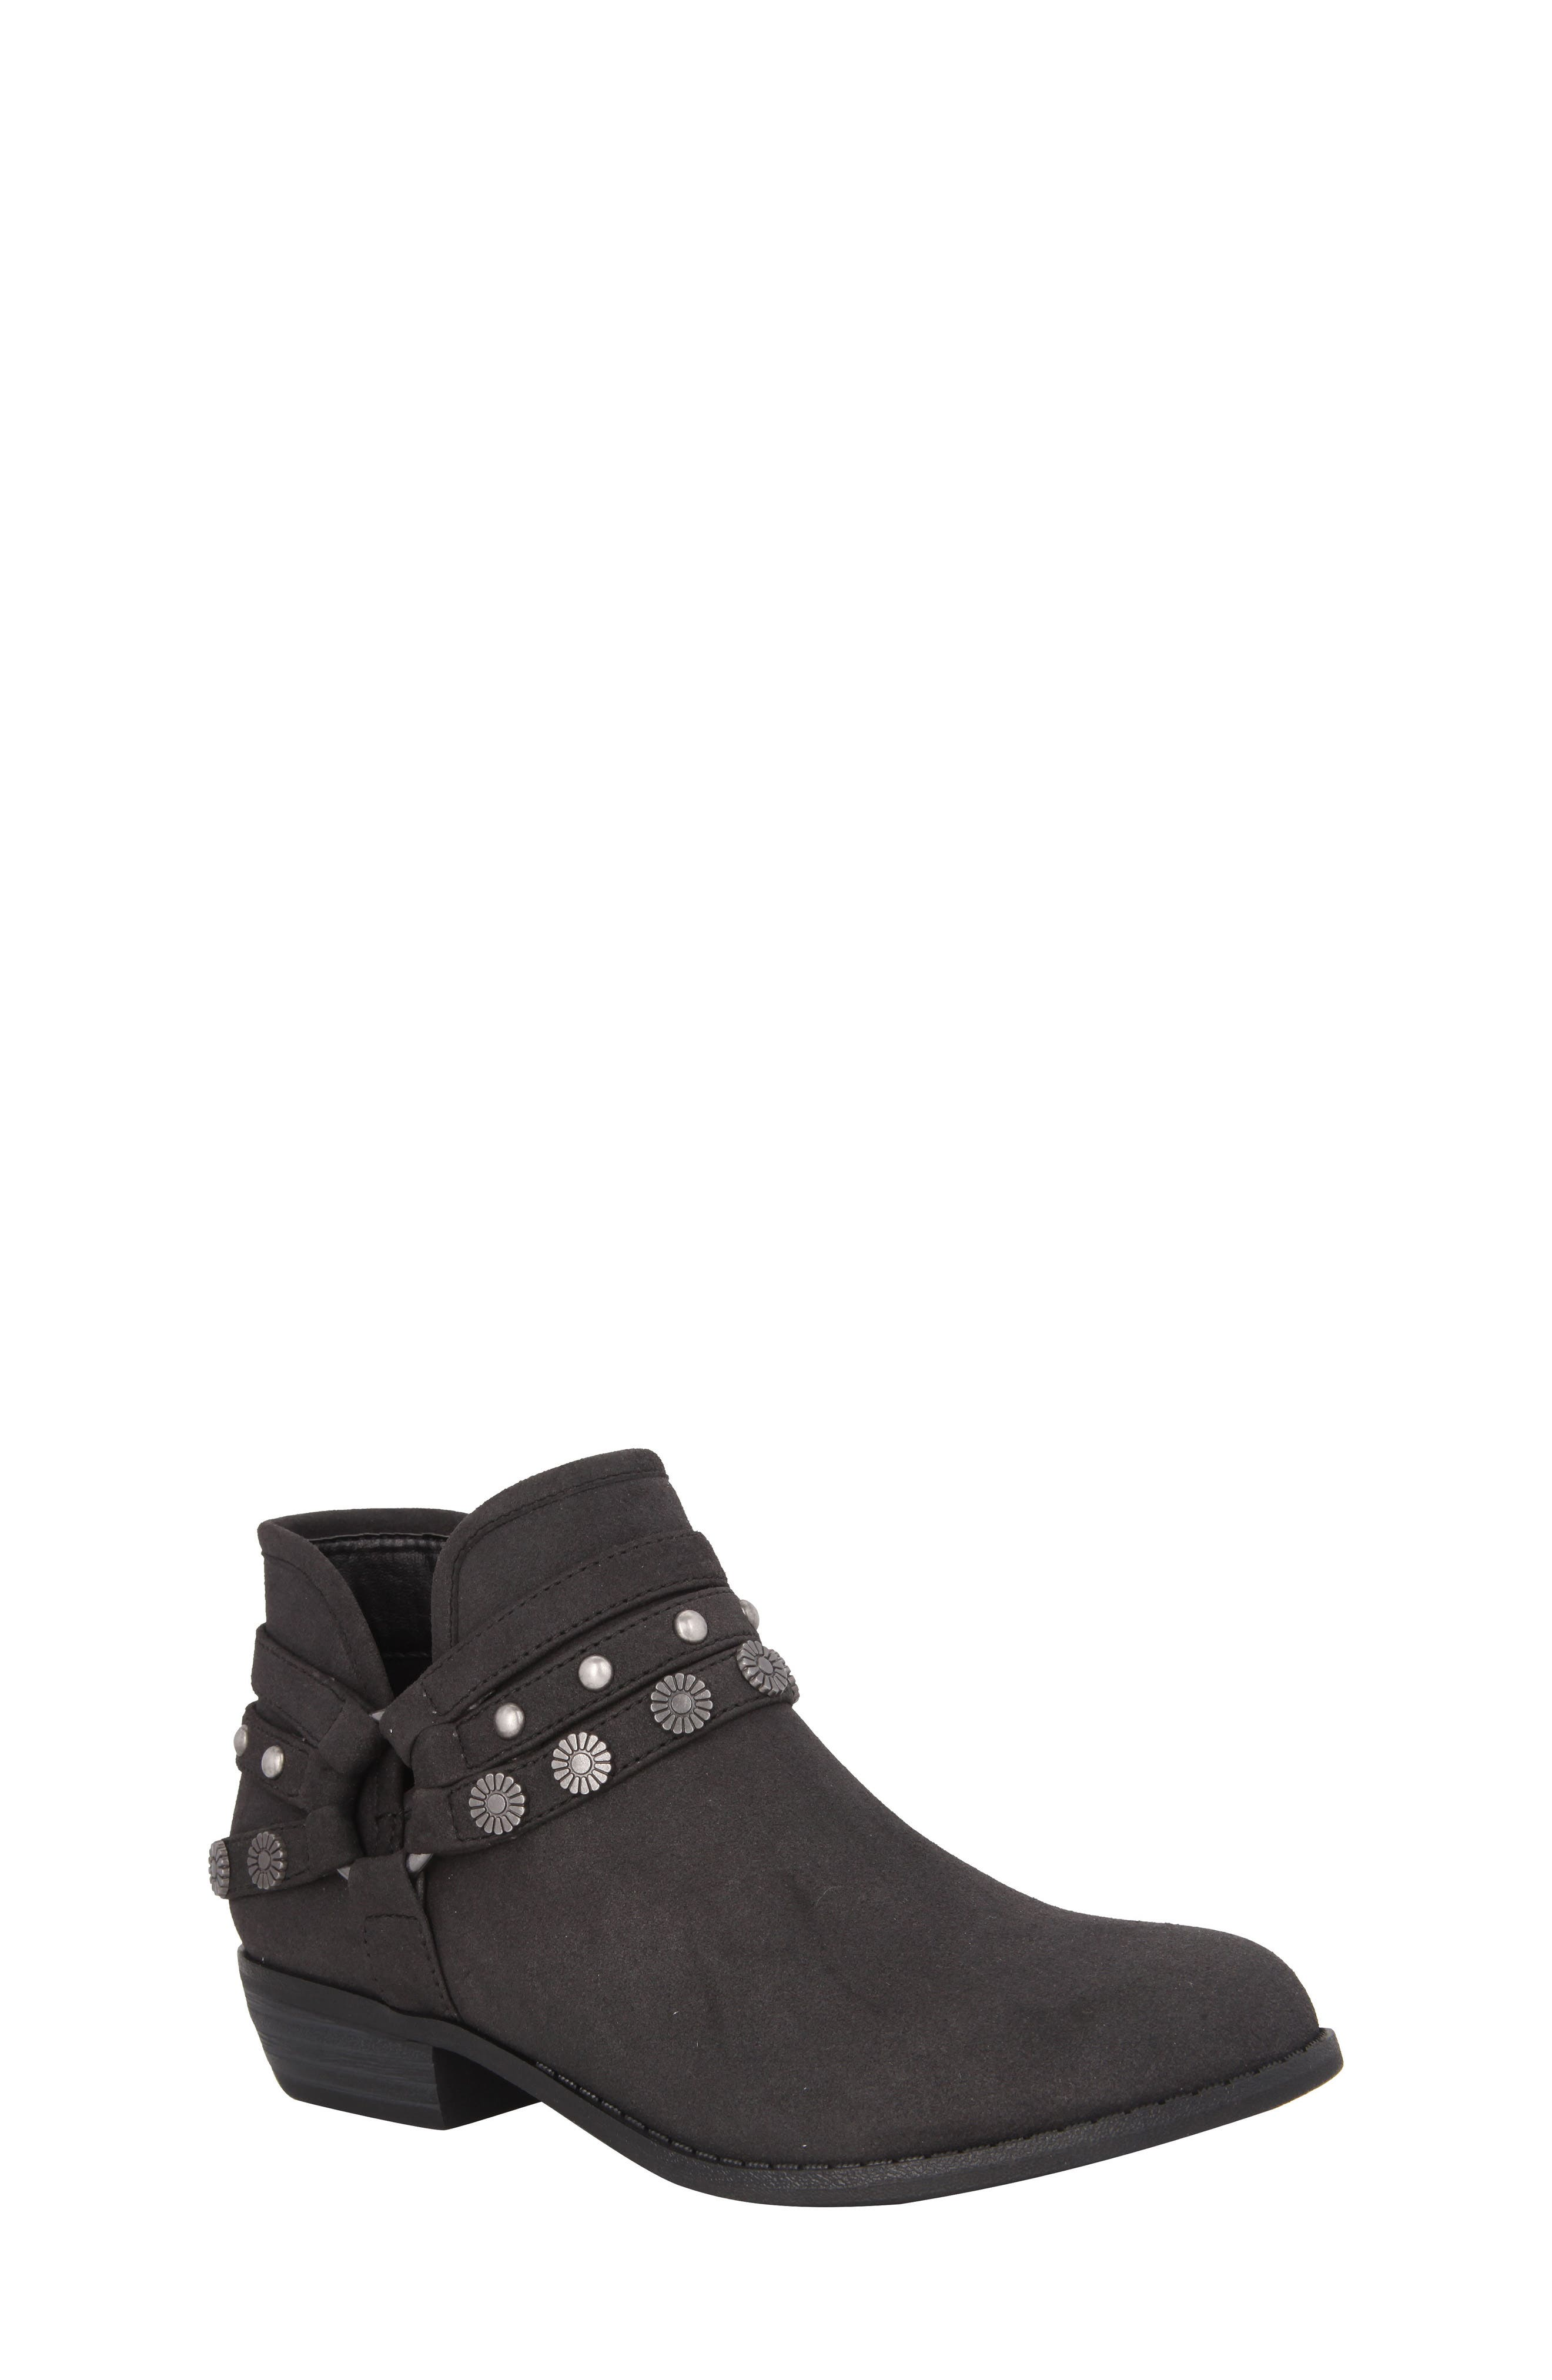 Zoe Strappy Low Bootie,                             Main thumbnail 1, color,                             003